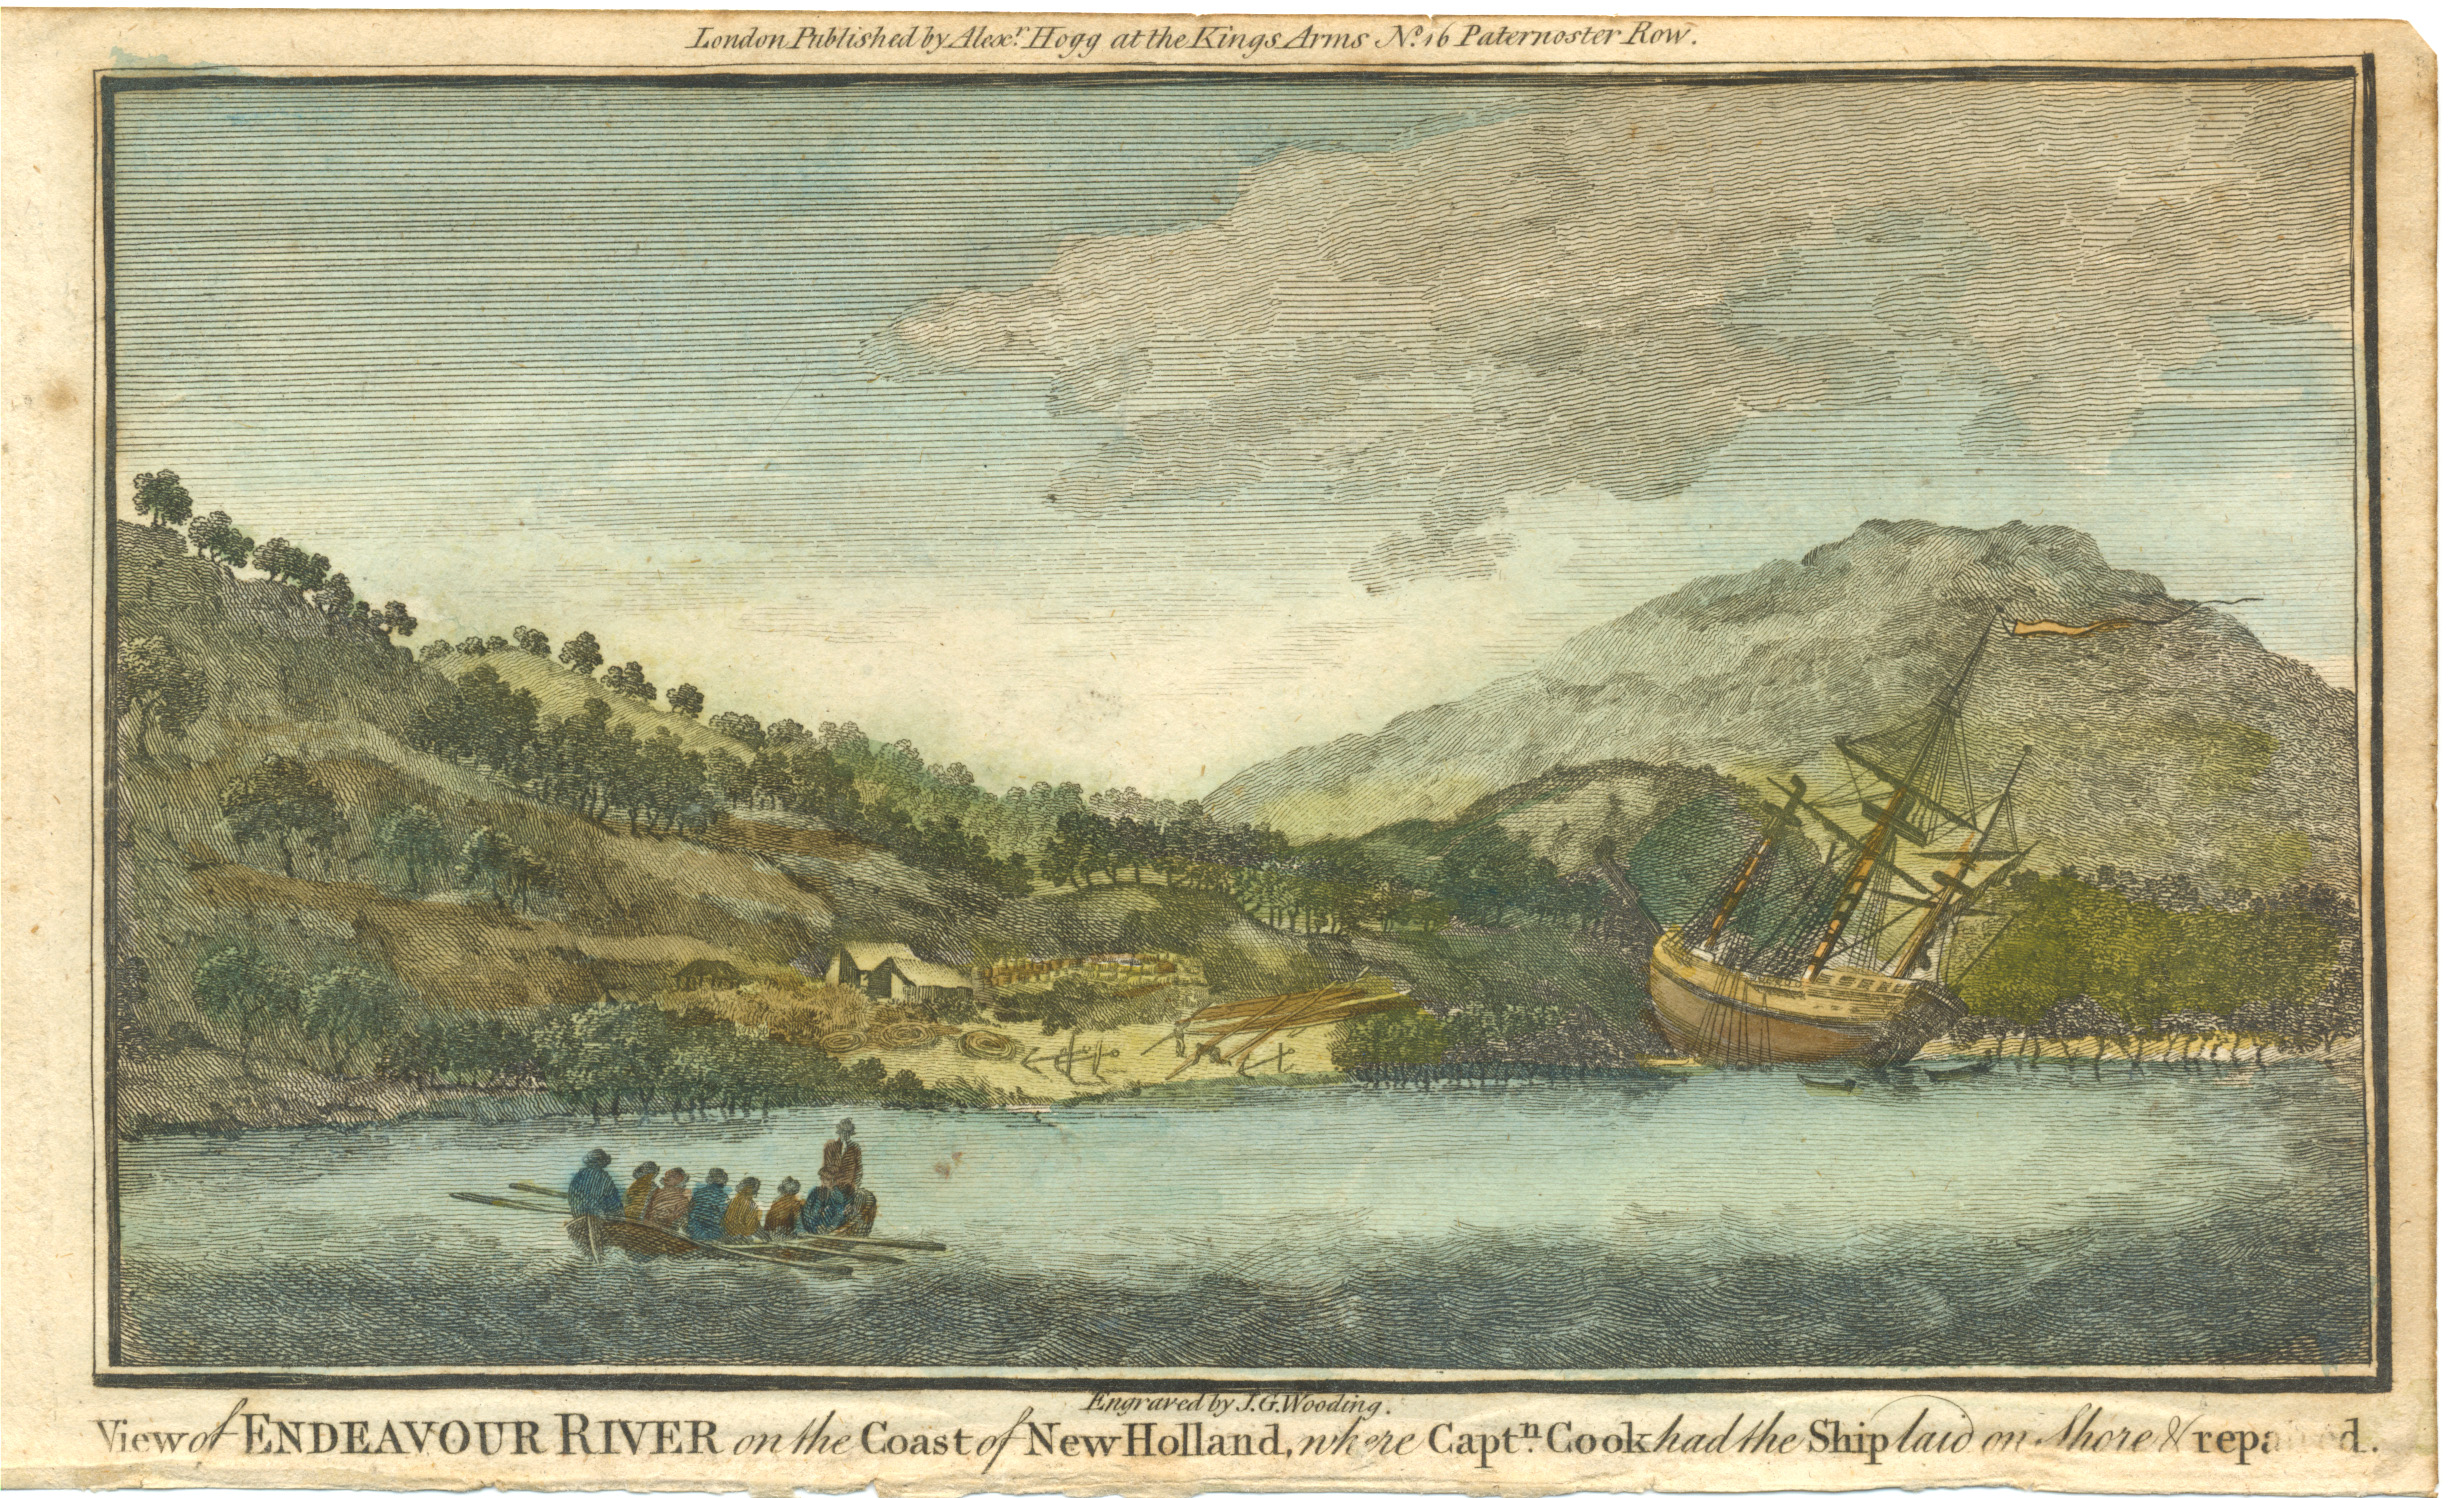 Endeavour River on the Coast of New Holland. c1790